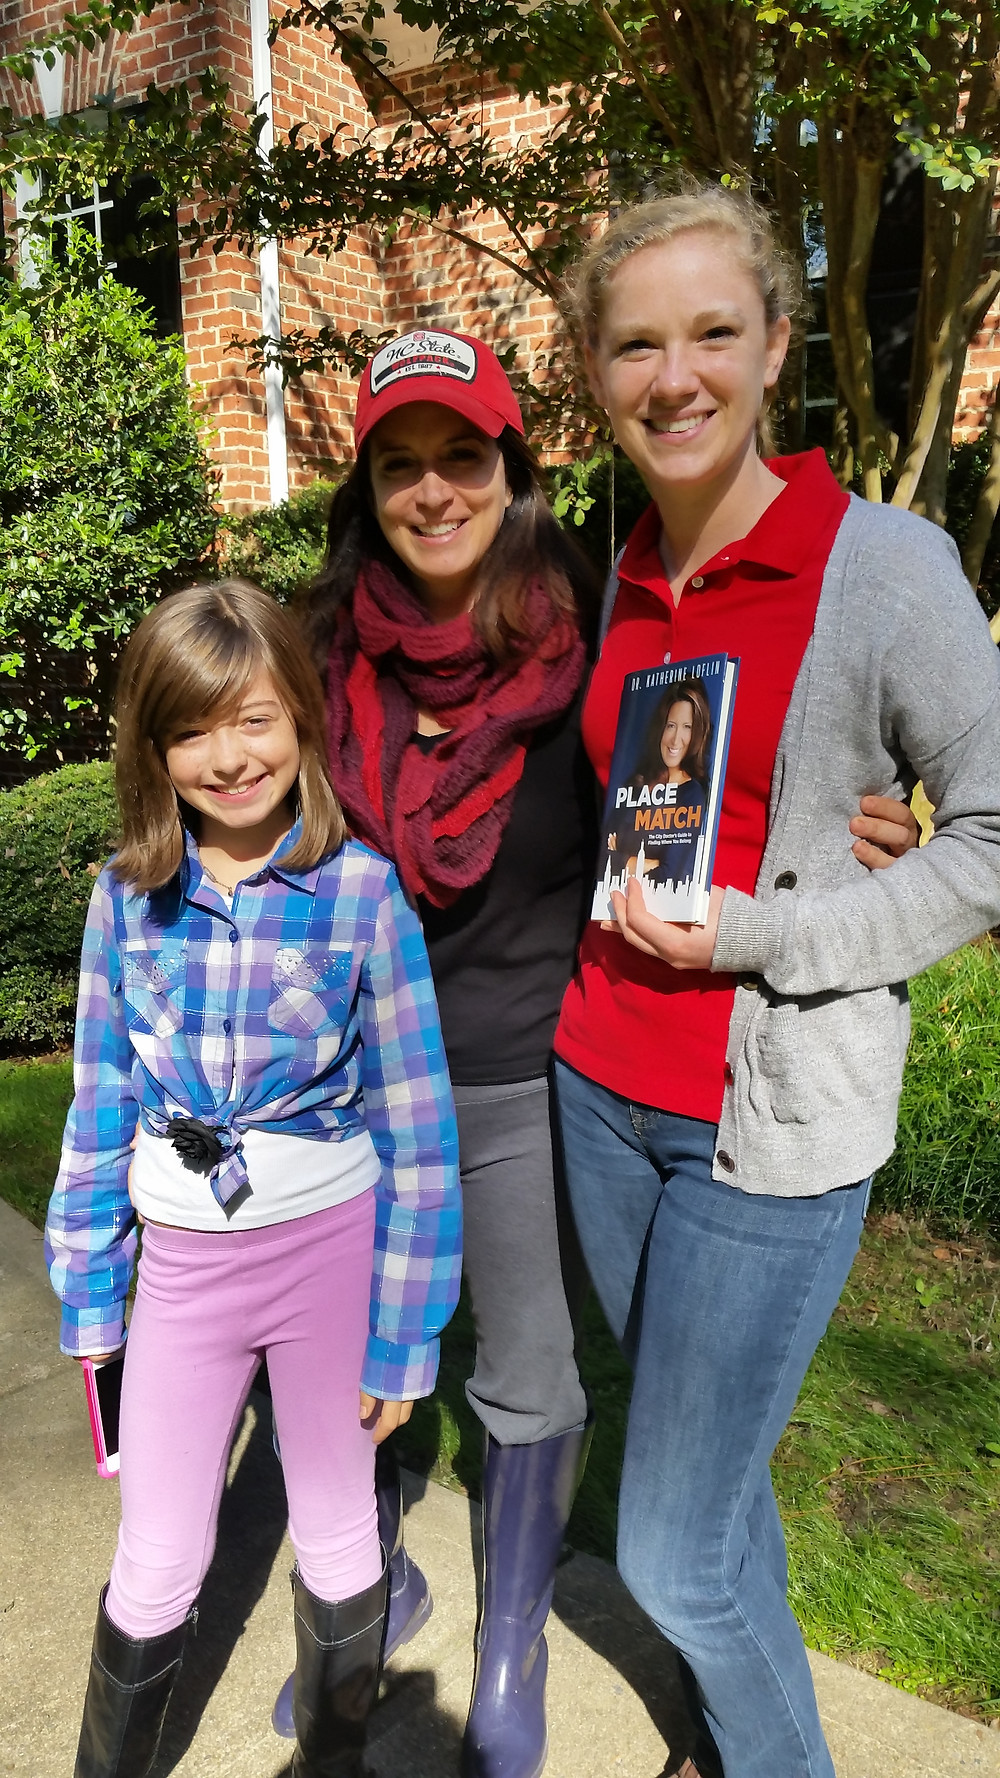 Me with Katherine Loflin @thecitydoctor and her daughter Grace